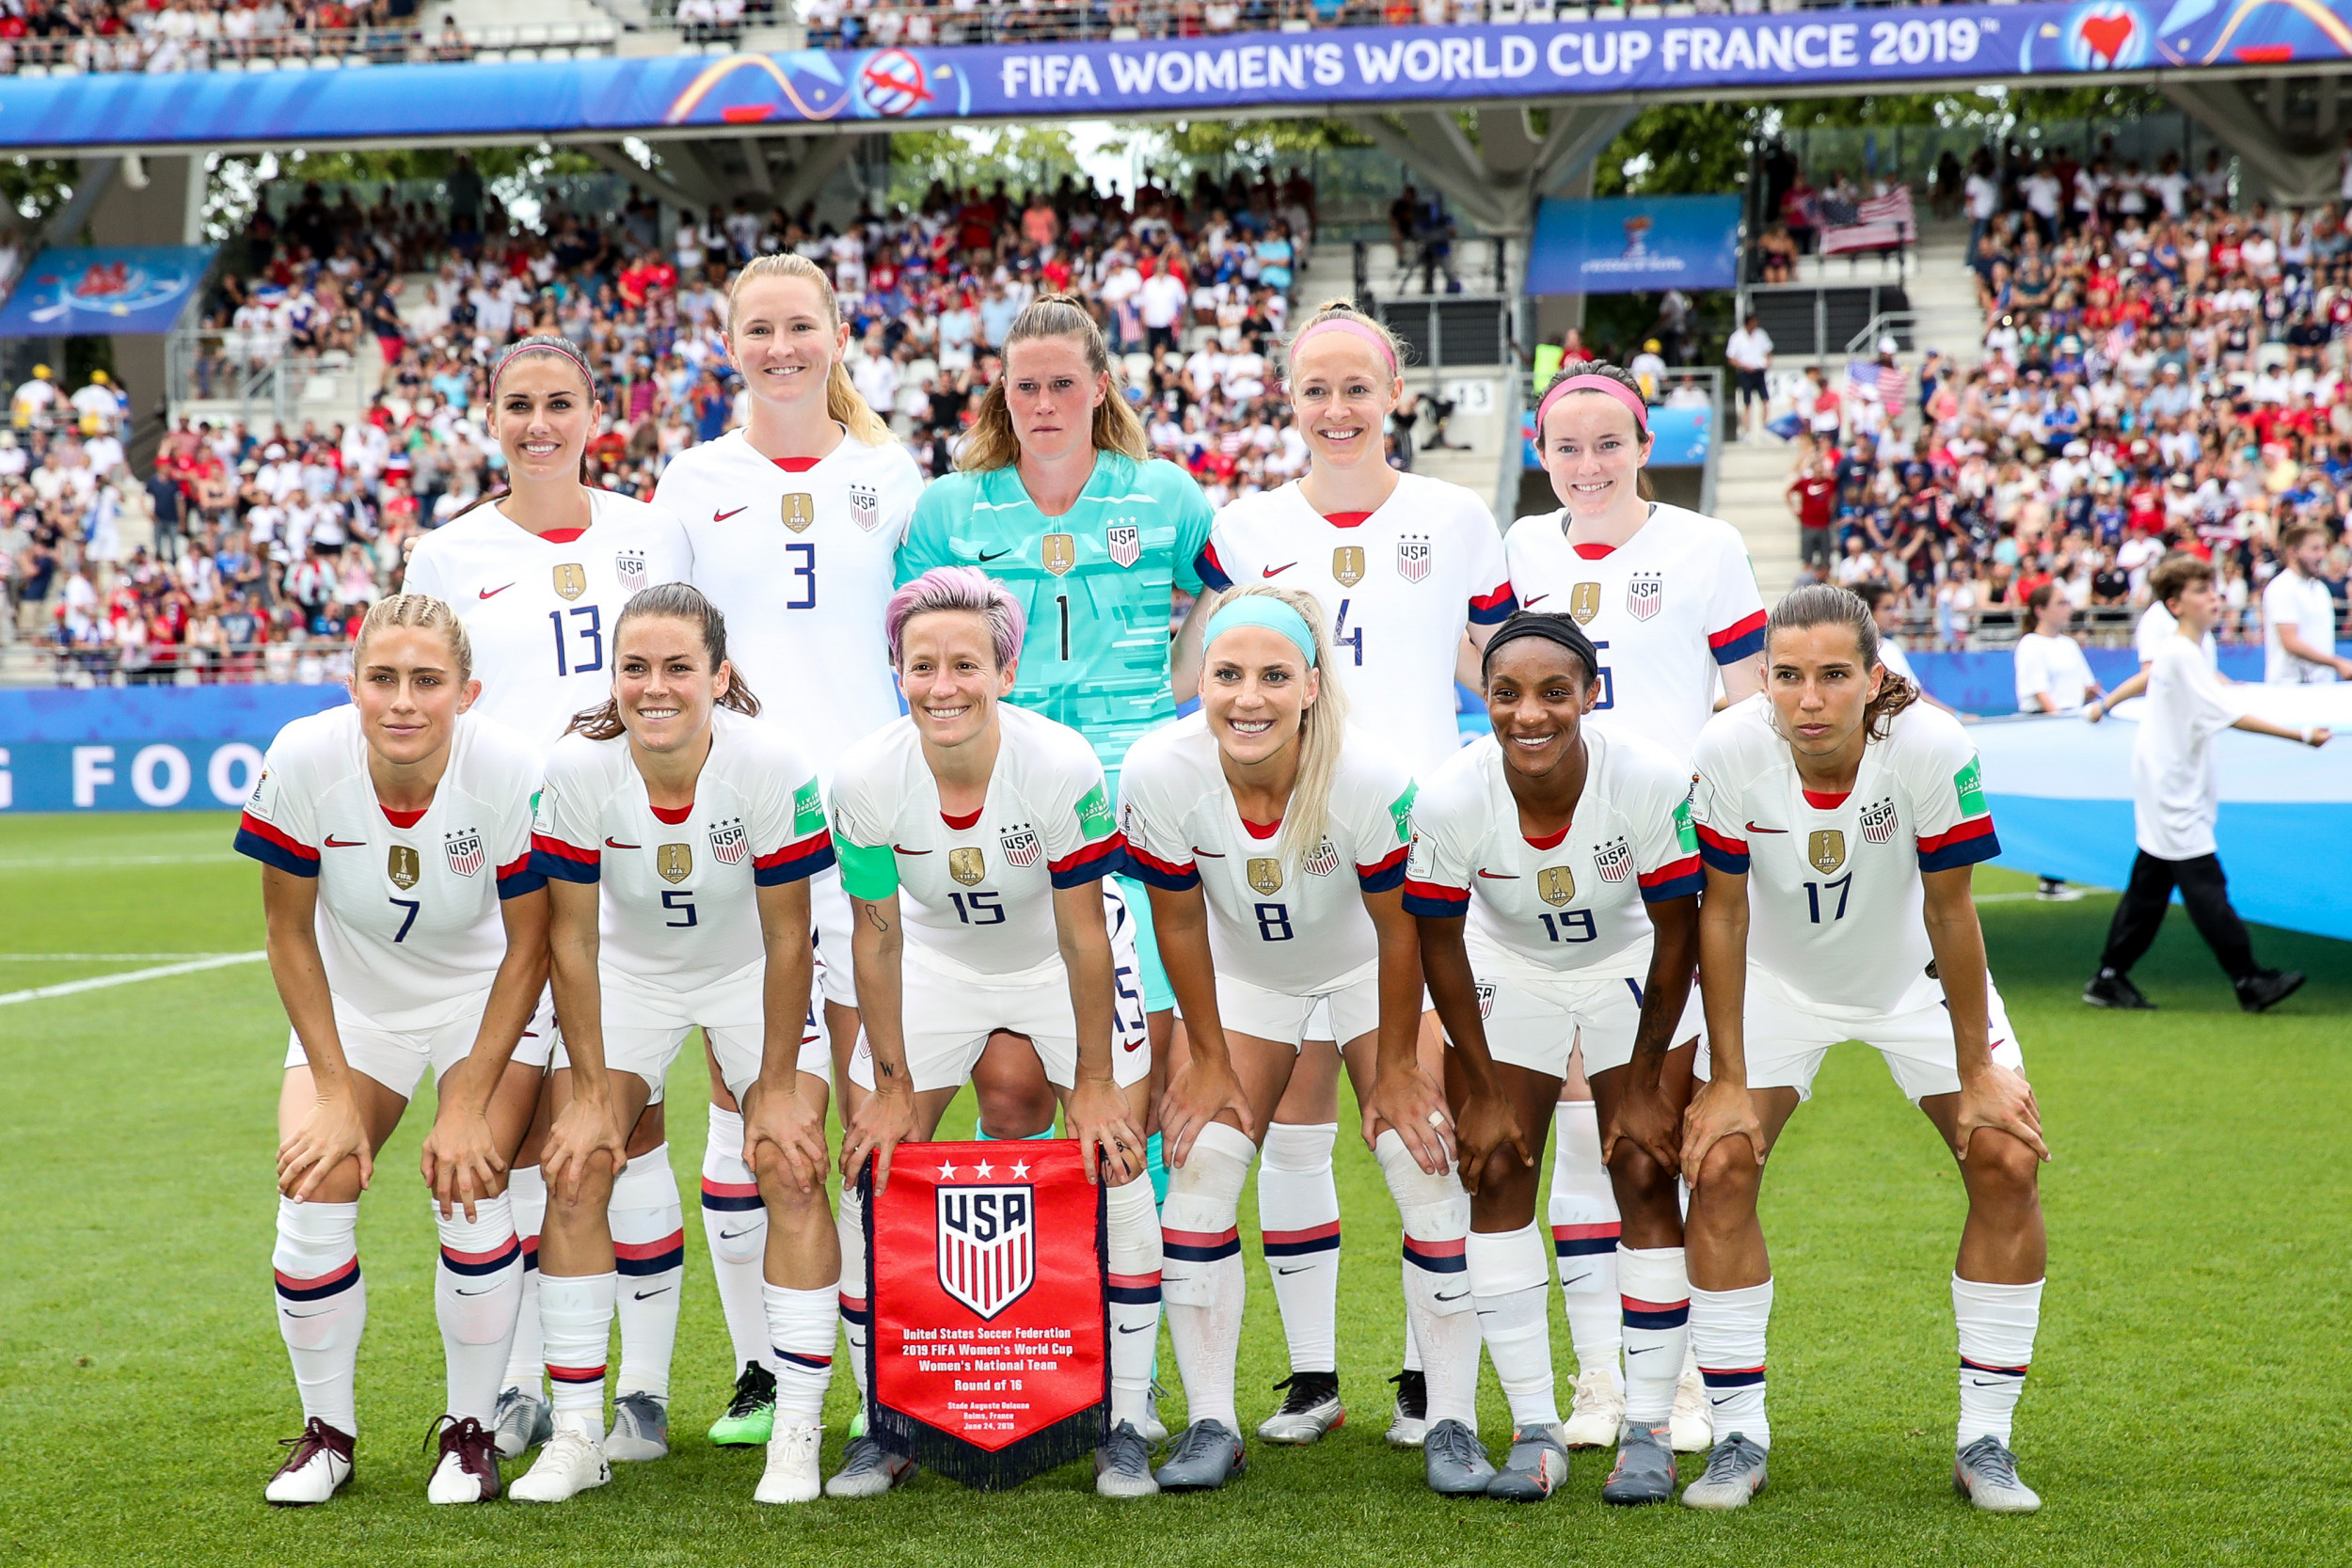 Women's World Cup 2019: Quarter-Finals Schedule, Power Rankings